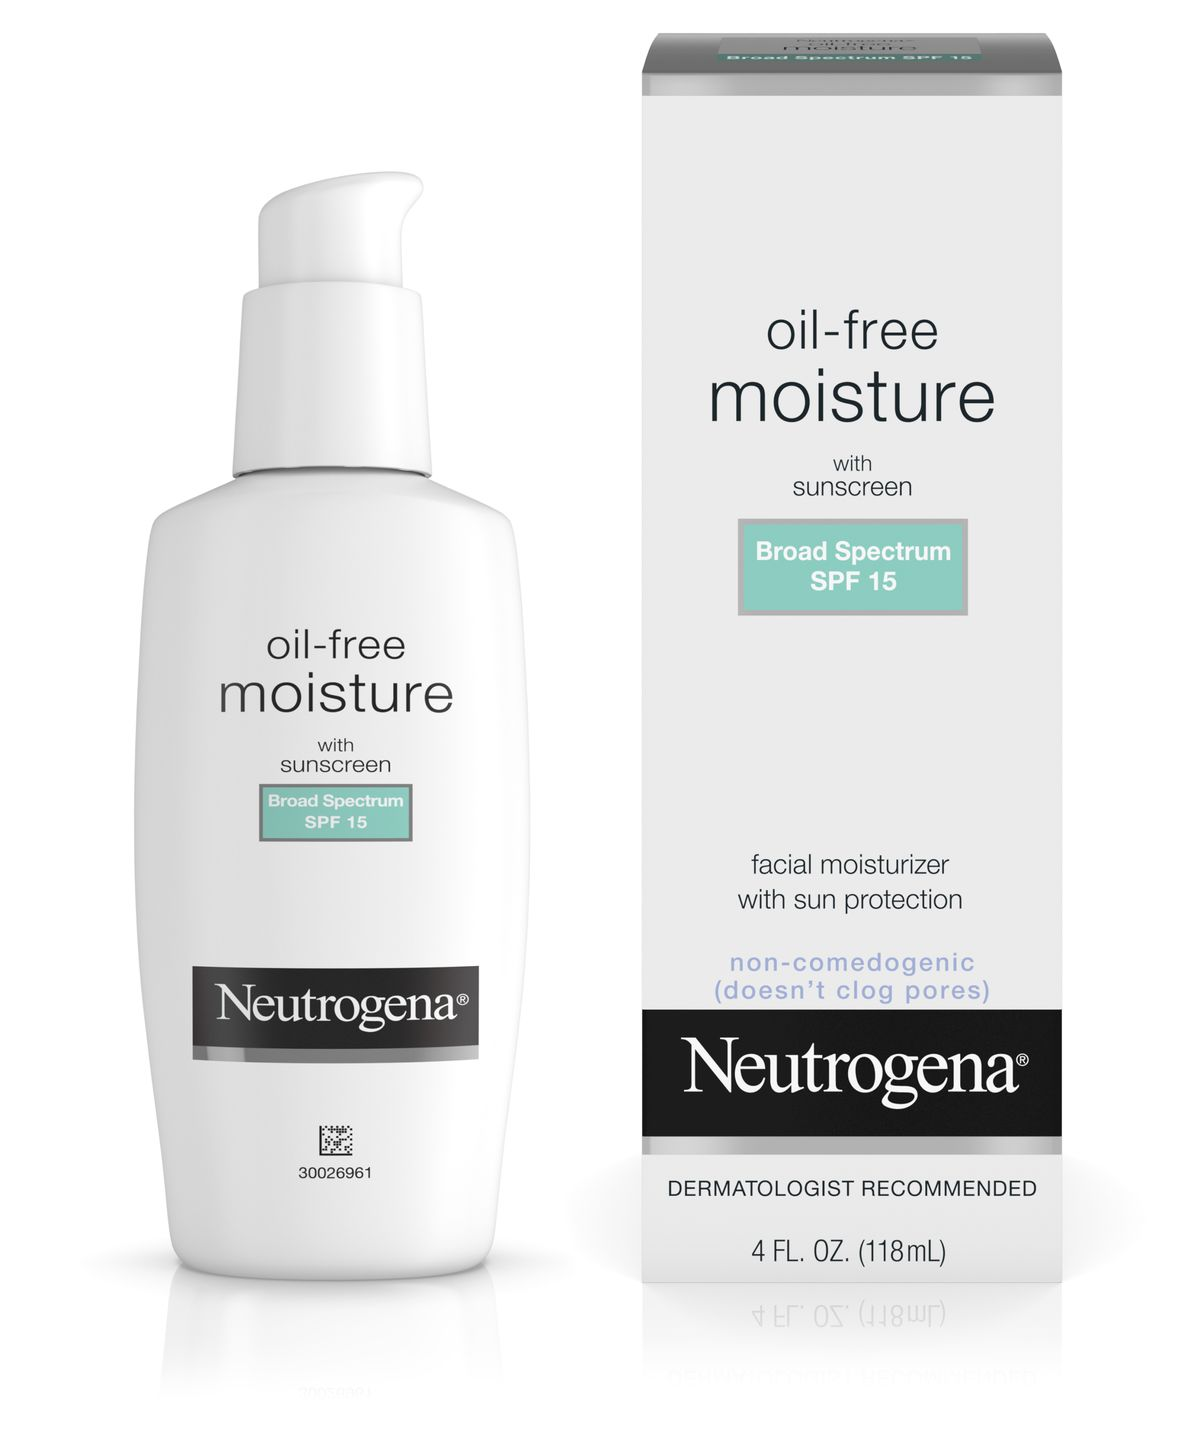 Neutrogena Oil-Free Moisture with SPF 15